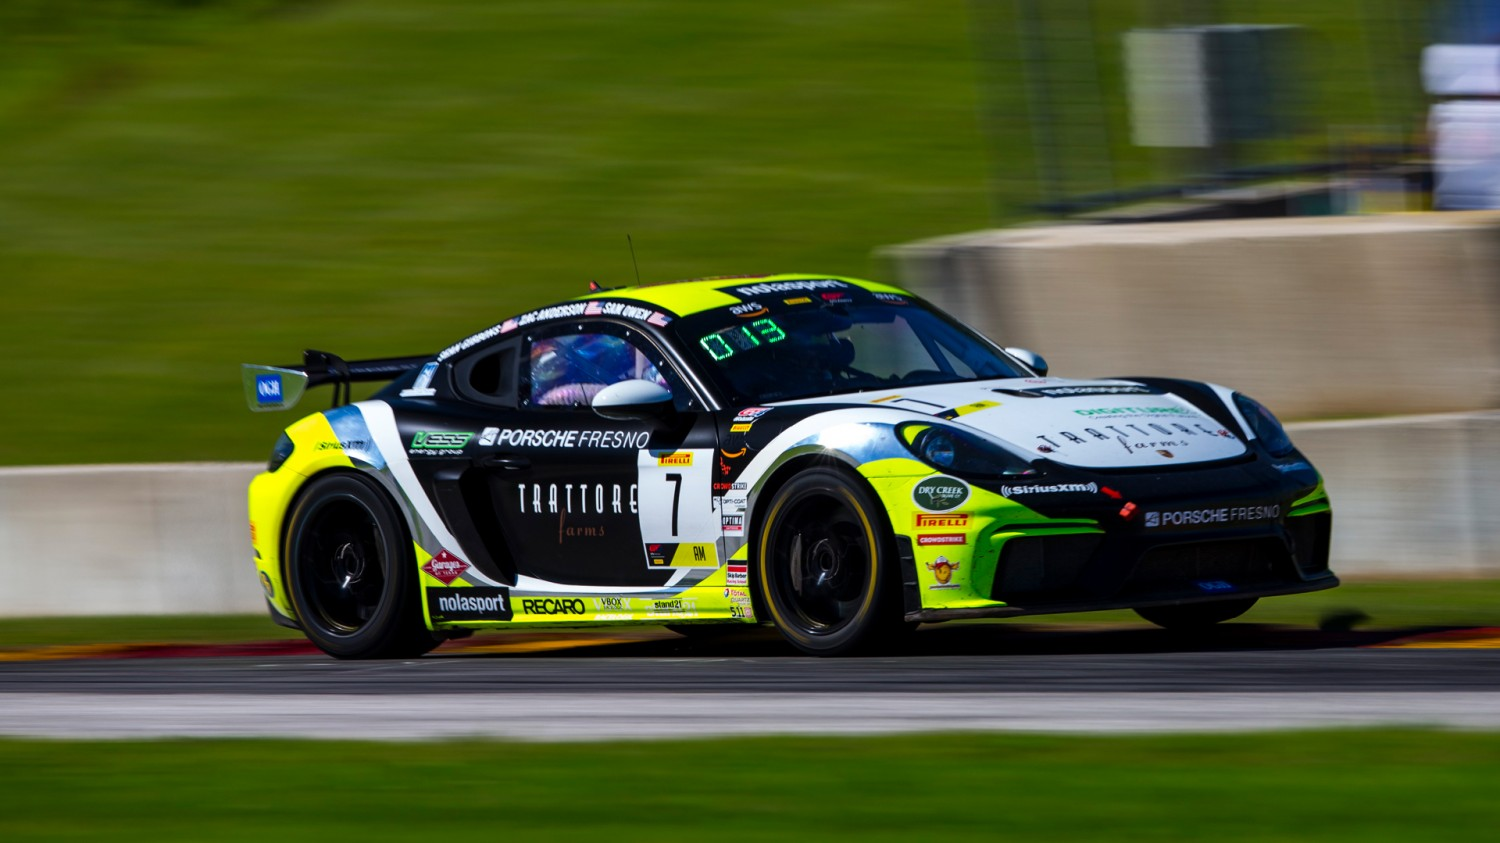 CJ Wilson & Porsche Fresno partners with OGH Motorsports for GT4 America title push